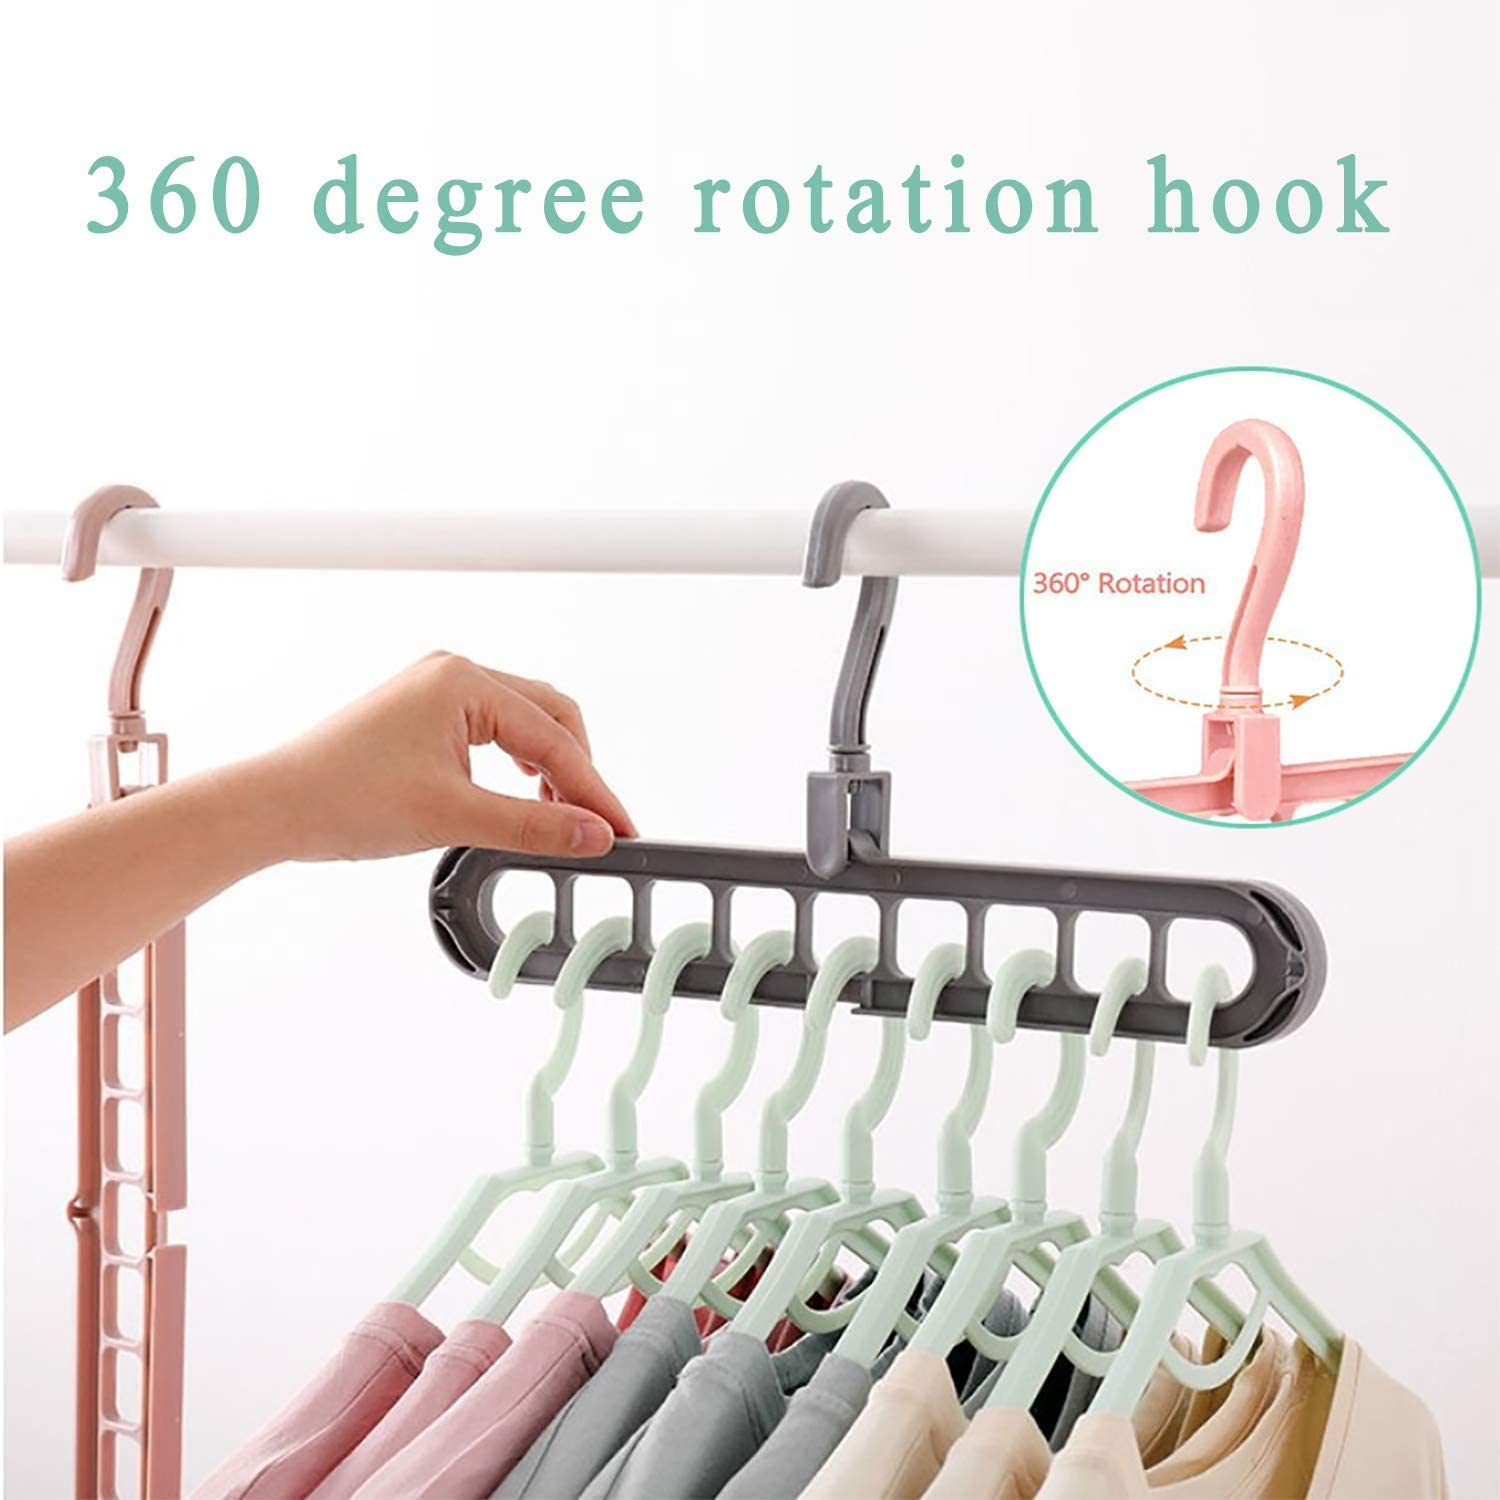 non-slip space saver hangers plastic clothes hangers rotate anti-skid folding hanger scarf clothes hangers mixcolor-10 Pack Happylohas hangers space saving for Drying and Storage,